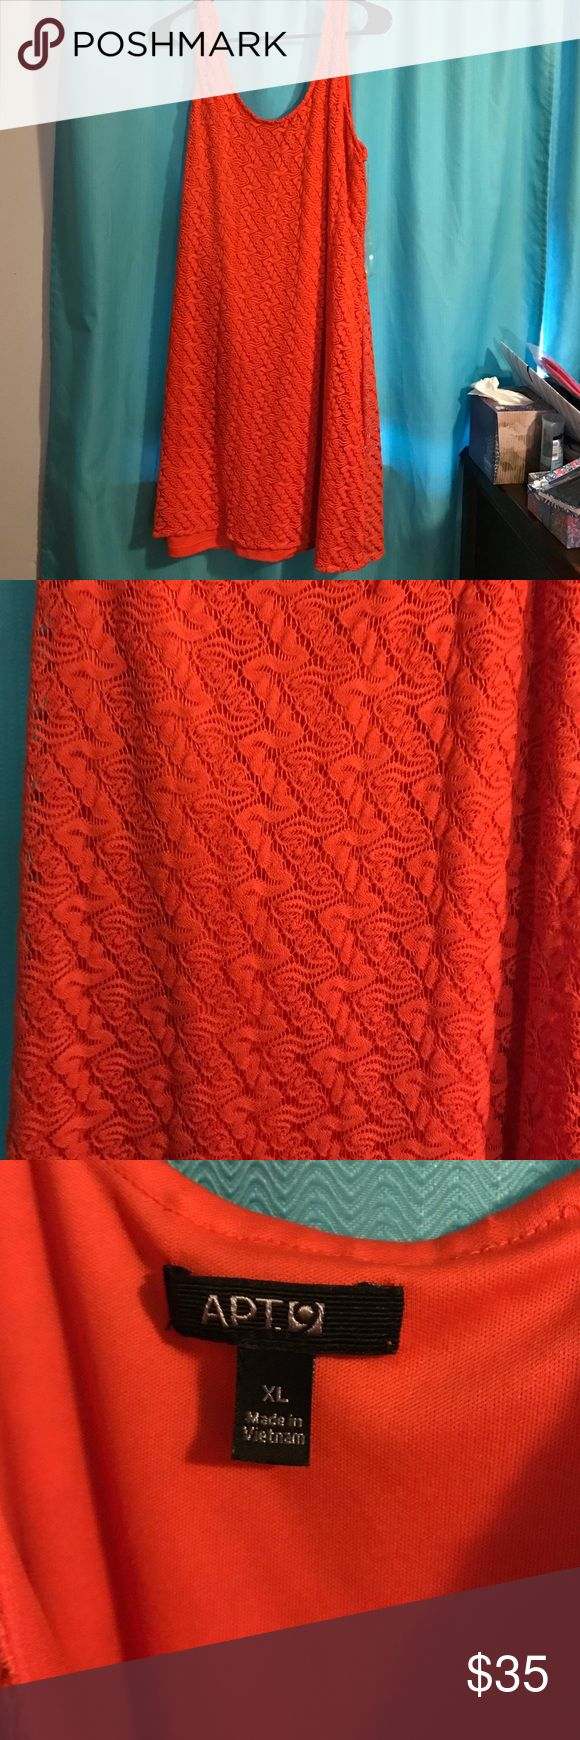 Fun Orange Lace Dress EUC fun orange Lace dress. Lace with orange slip underneath. Great pop of color for any outfit! Size XL Apt. 9 Dresses Midi